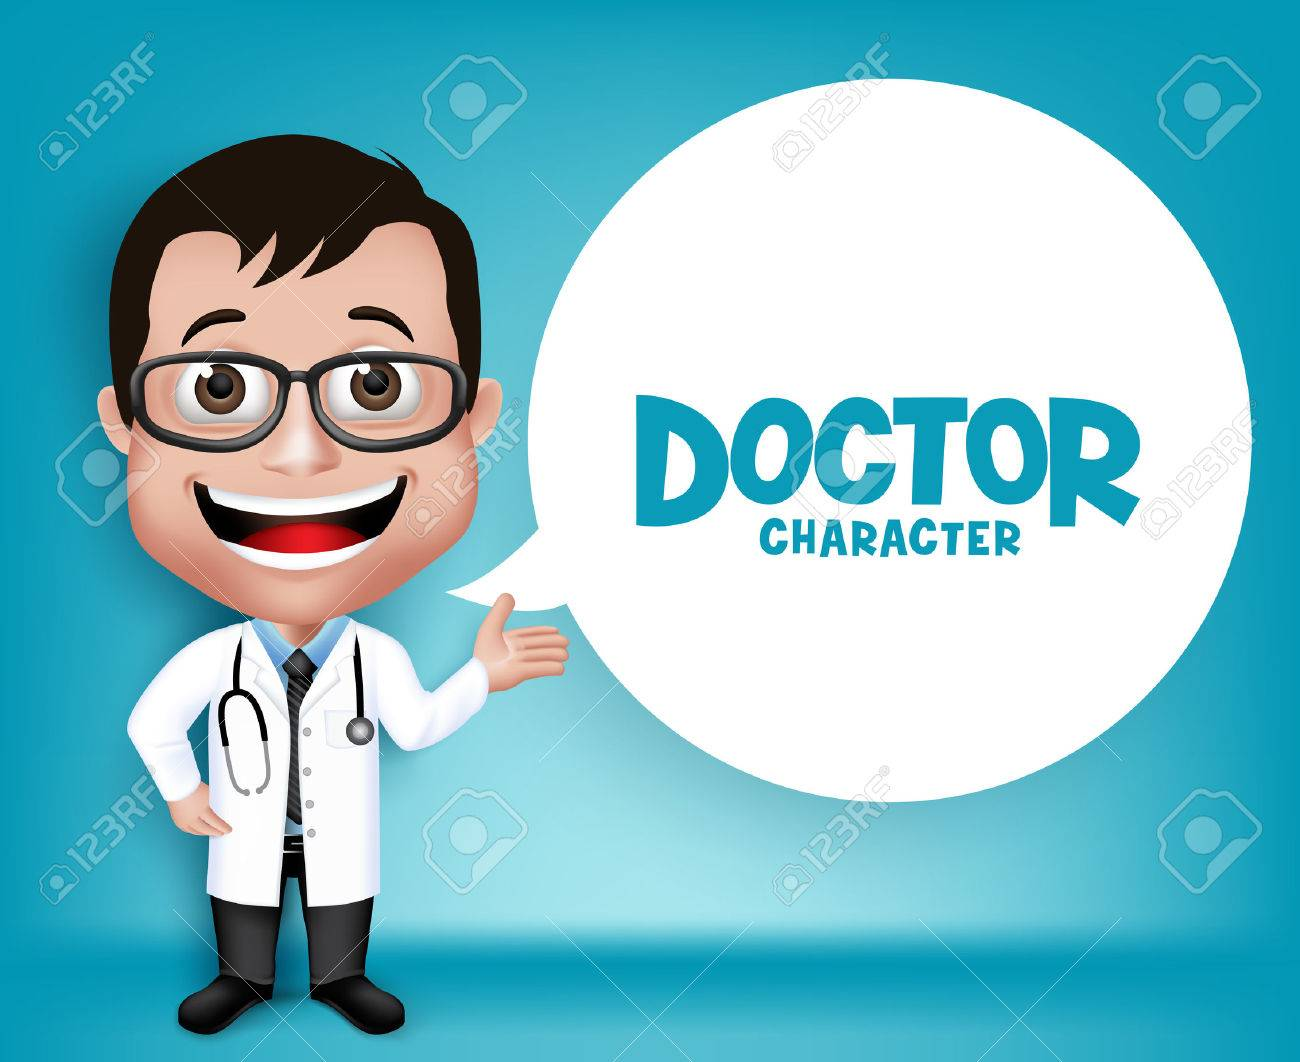 Realistic 3D Young Friendly Professional Doctor Medical Character Speaking Prescription in Patient. White Space for Message. - 43293785